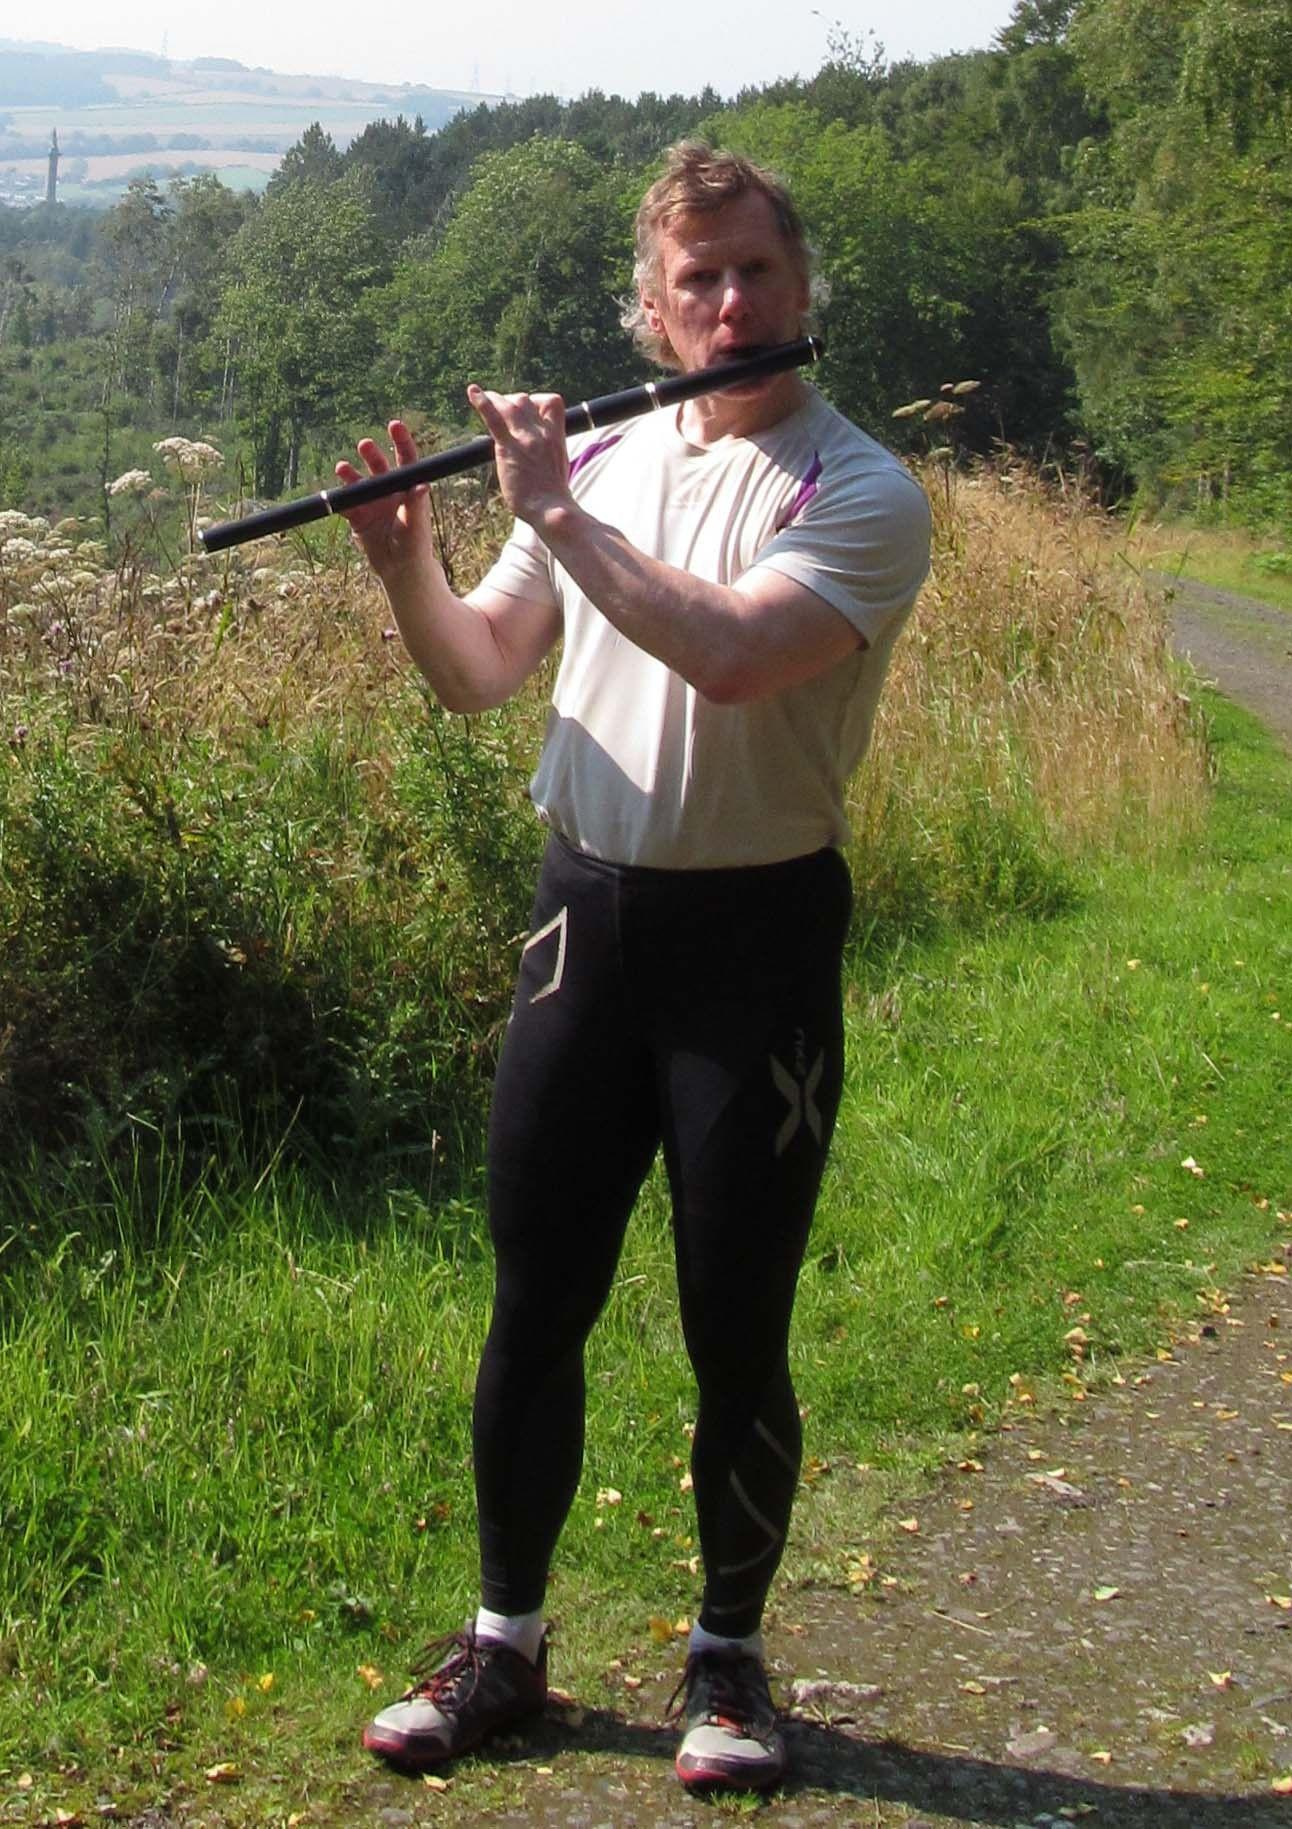 newcastle single gay men So if you find yourself in this part of the country and are looking for eligible dates,  the singles of newcastle could offer a sporting chance meet the knowledge.